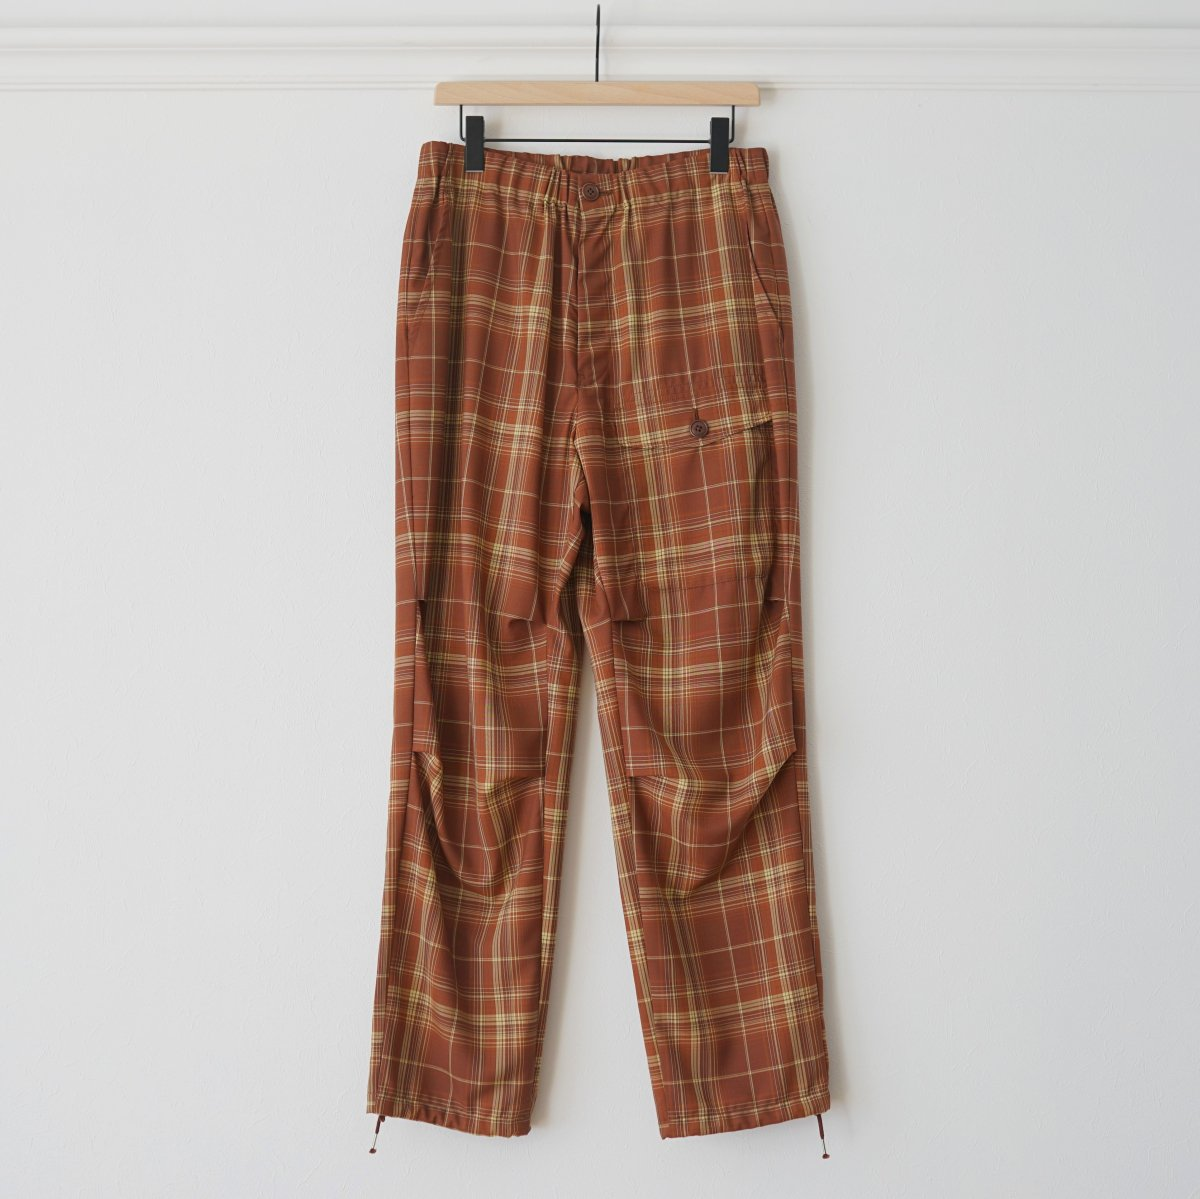 【WELLDER ウェルダー】TAPERD CARGO TROUSERS - BROWN